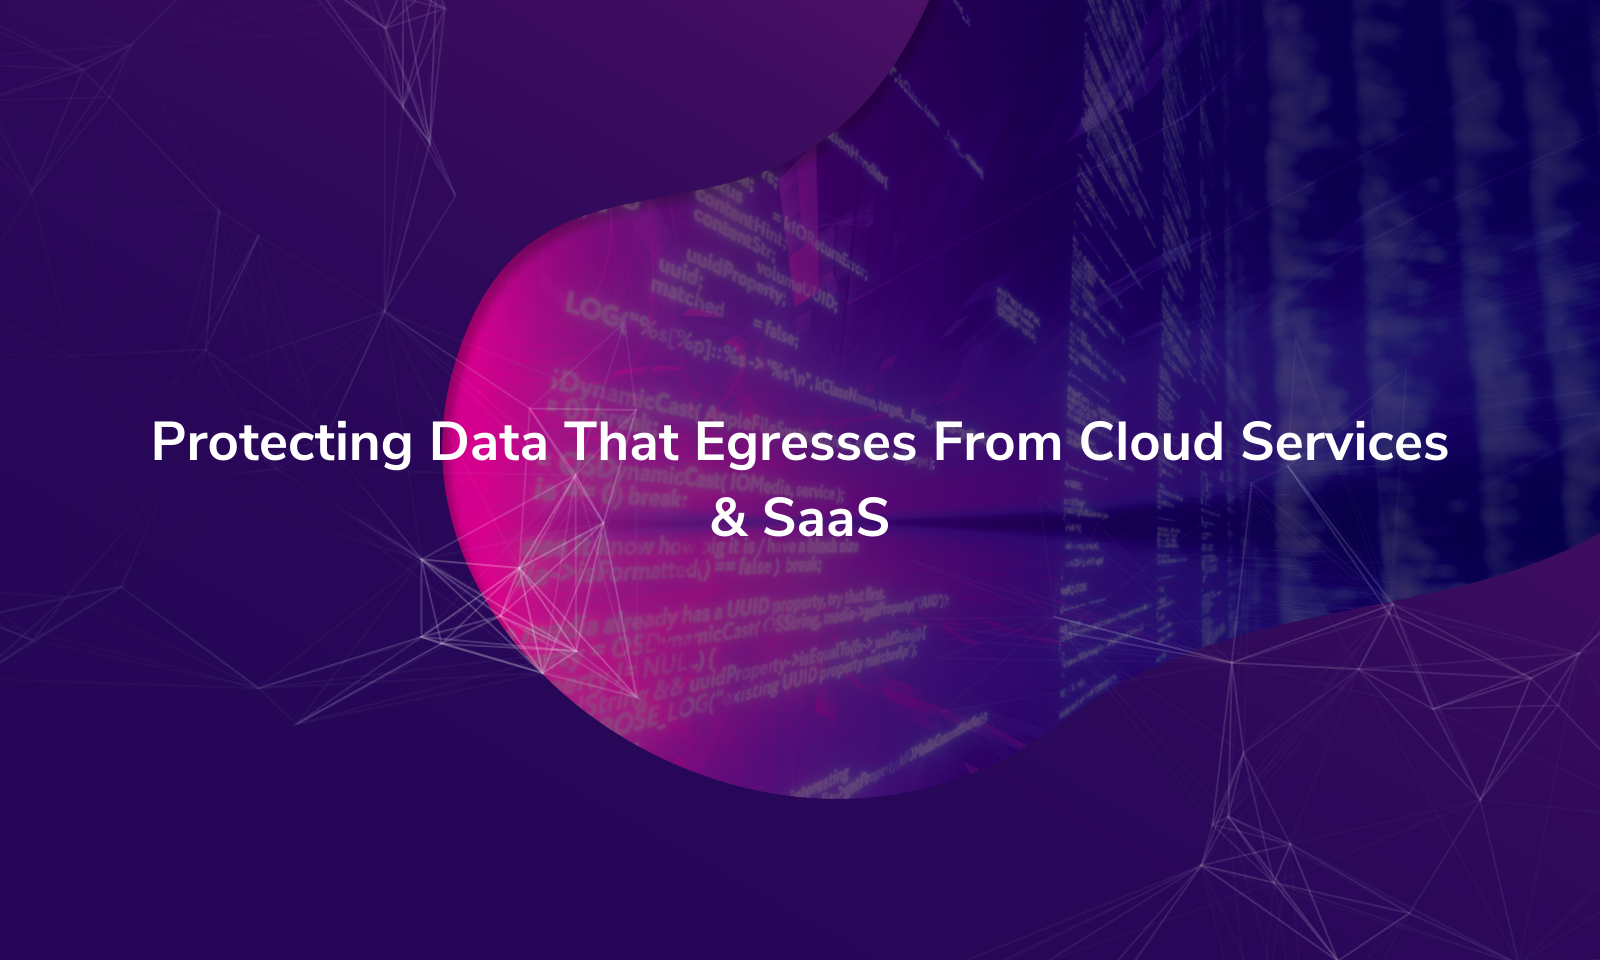 Protecting Data That Egresses From Cloud Services & SaaS